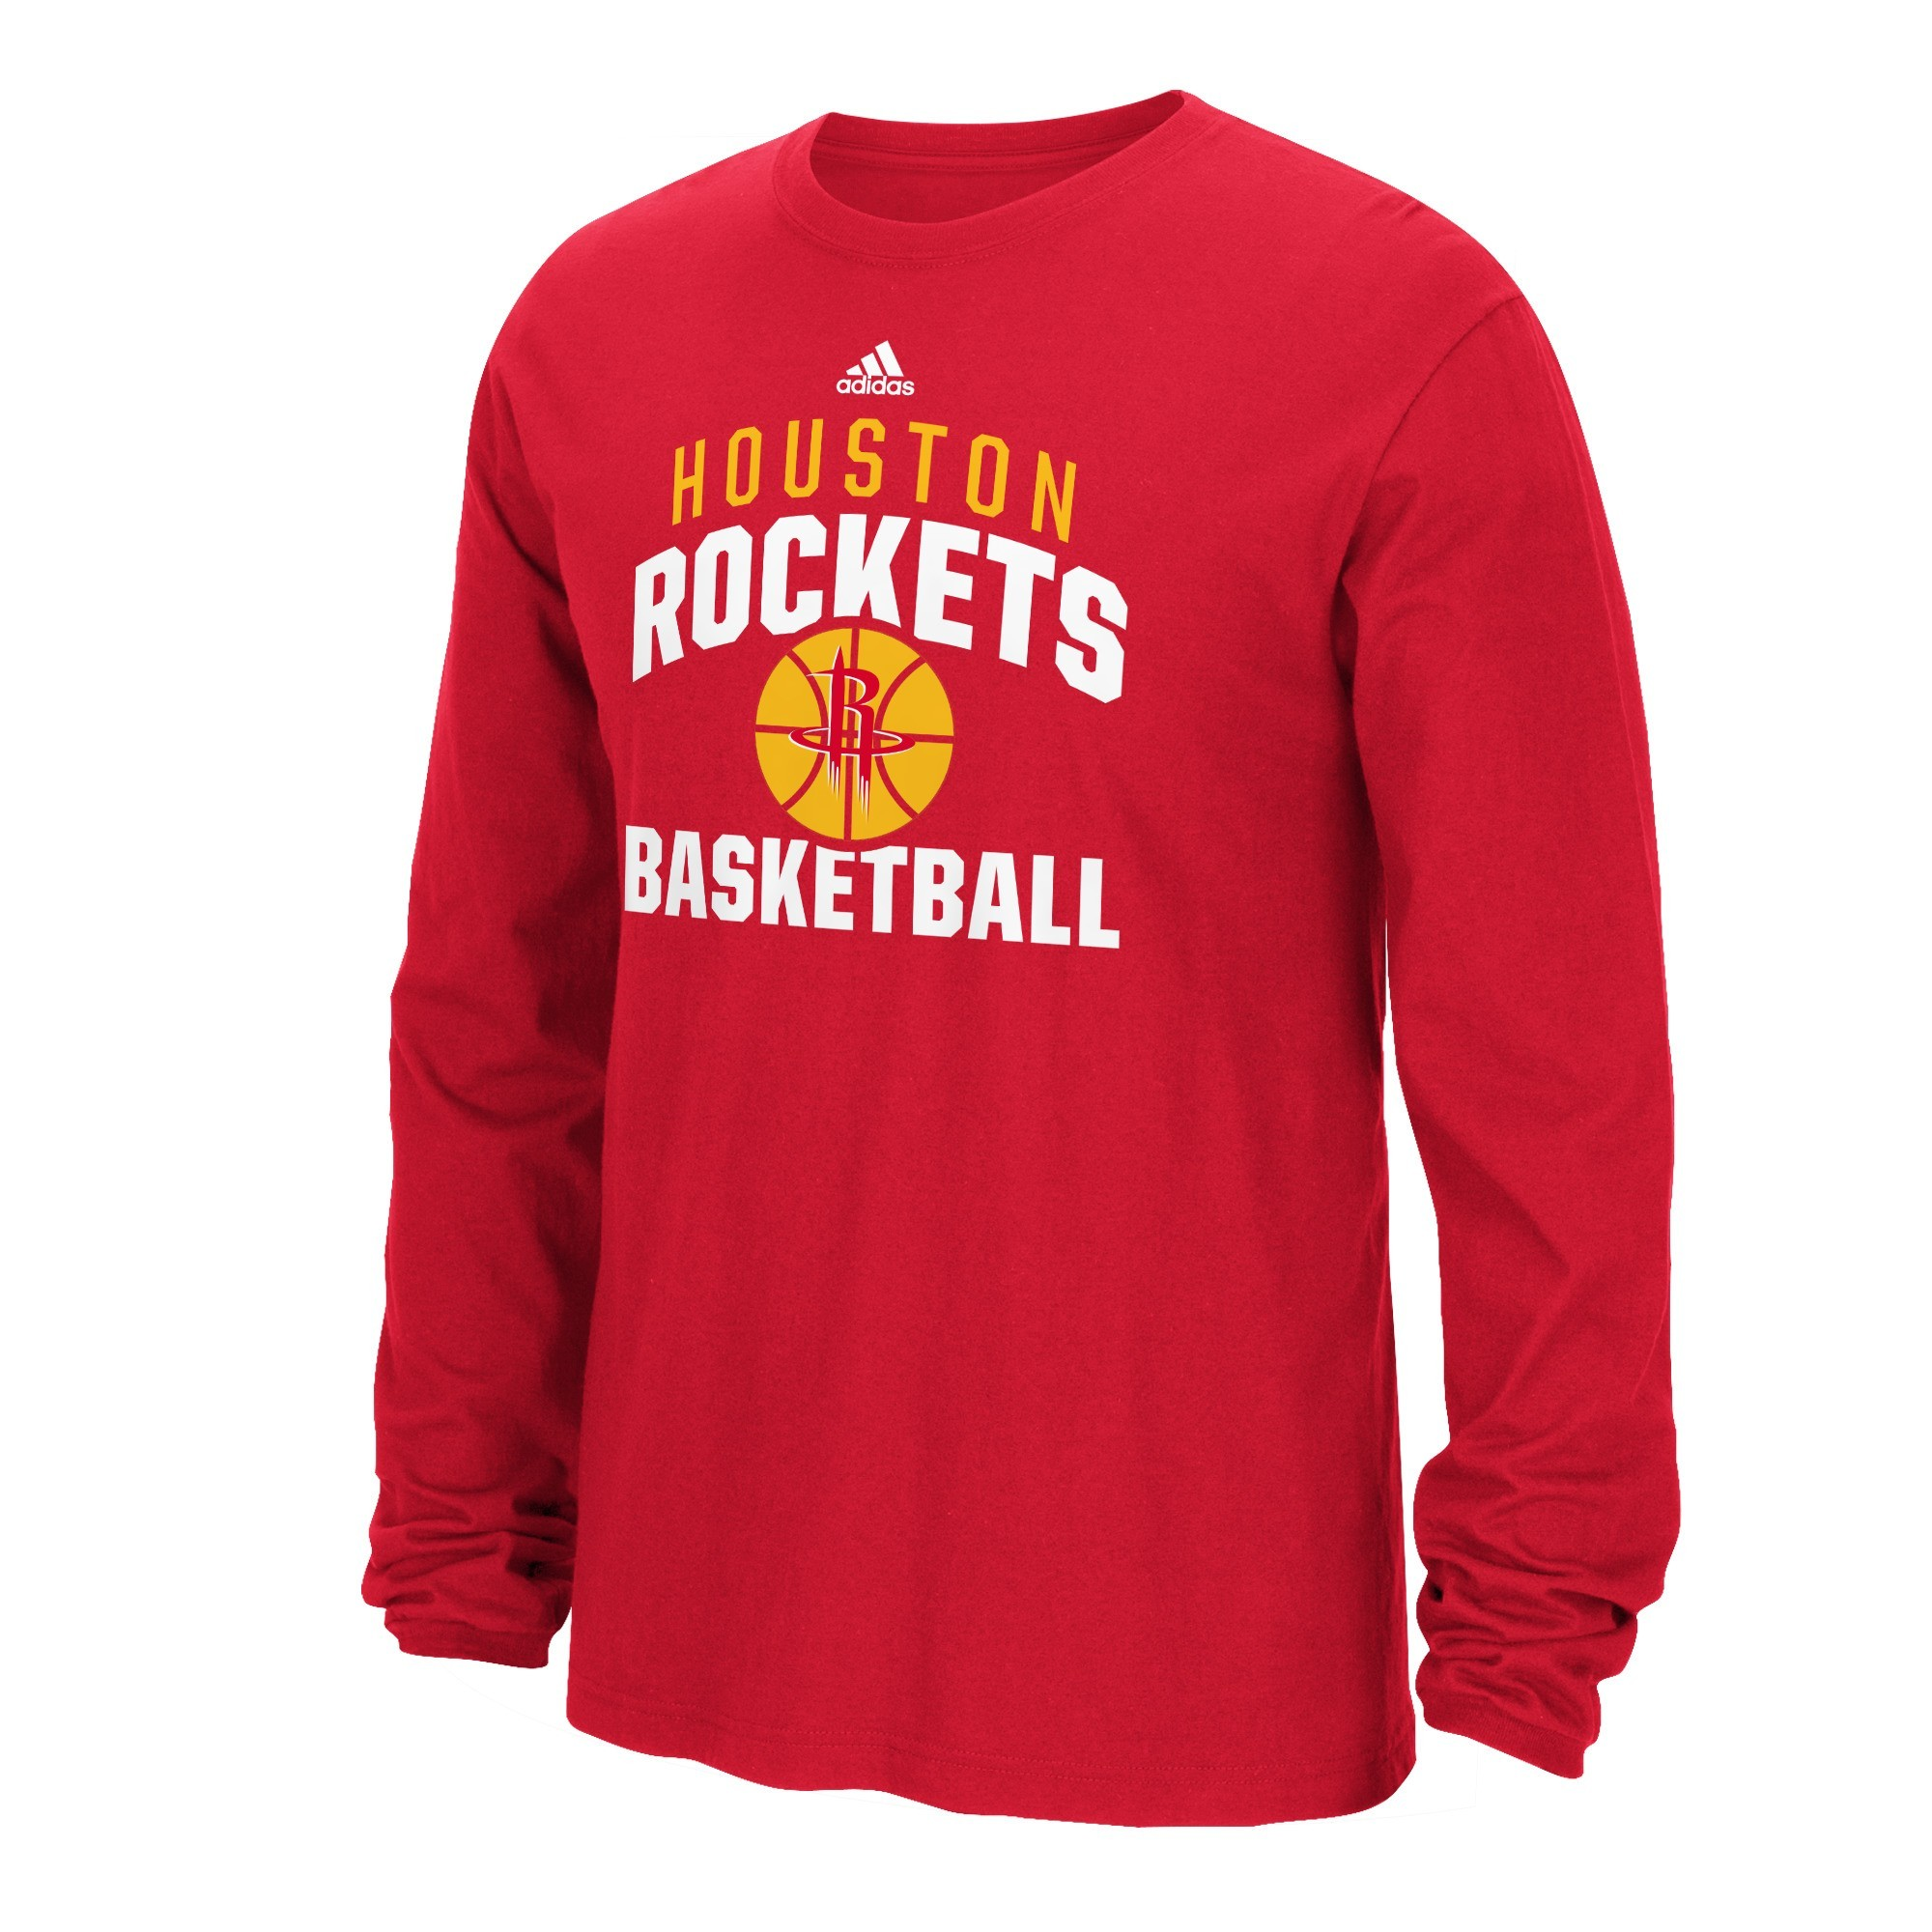 cheap for discount cf50c 8df92 Details about Houston Rockets Adidas NBA